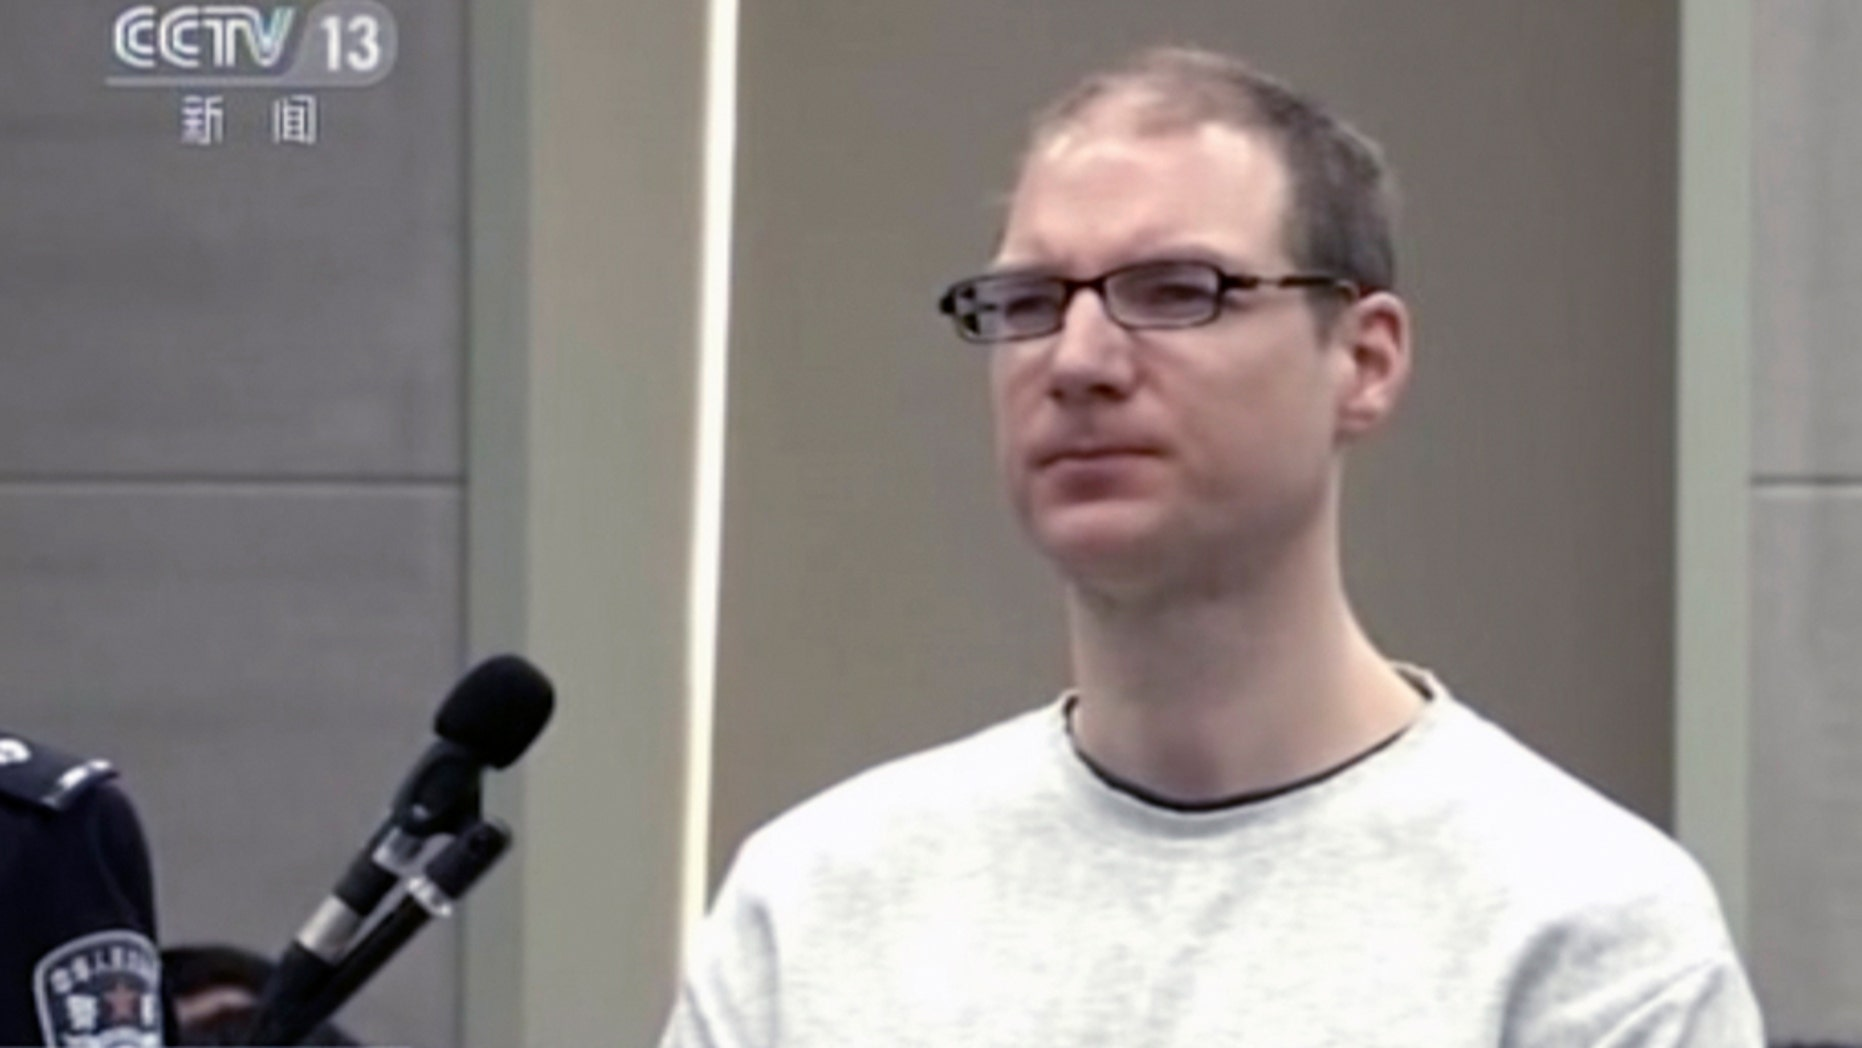 A Chinese court in northeastern Liaoning province announced Monday that it had sentenced Robert Lloyd Schellenberg to death, reversing an earlier 2016 ruling that sentenced him to 15 years in prison.(CCTV via AP)